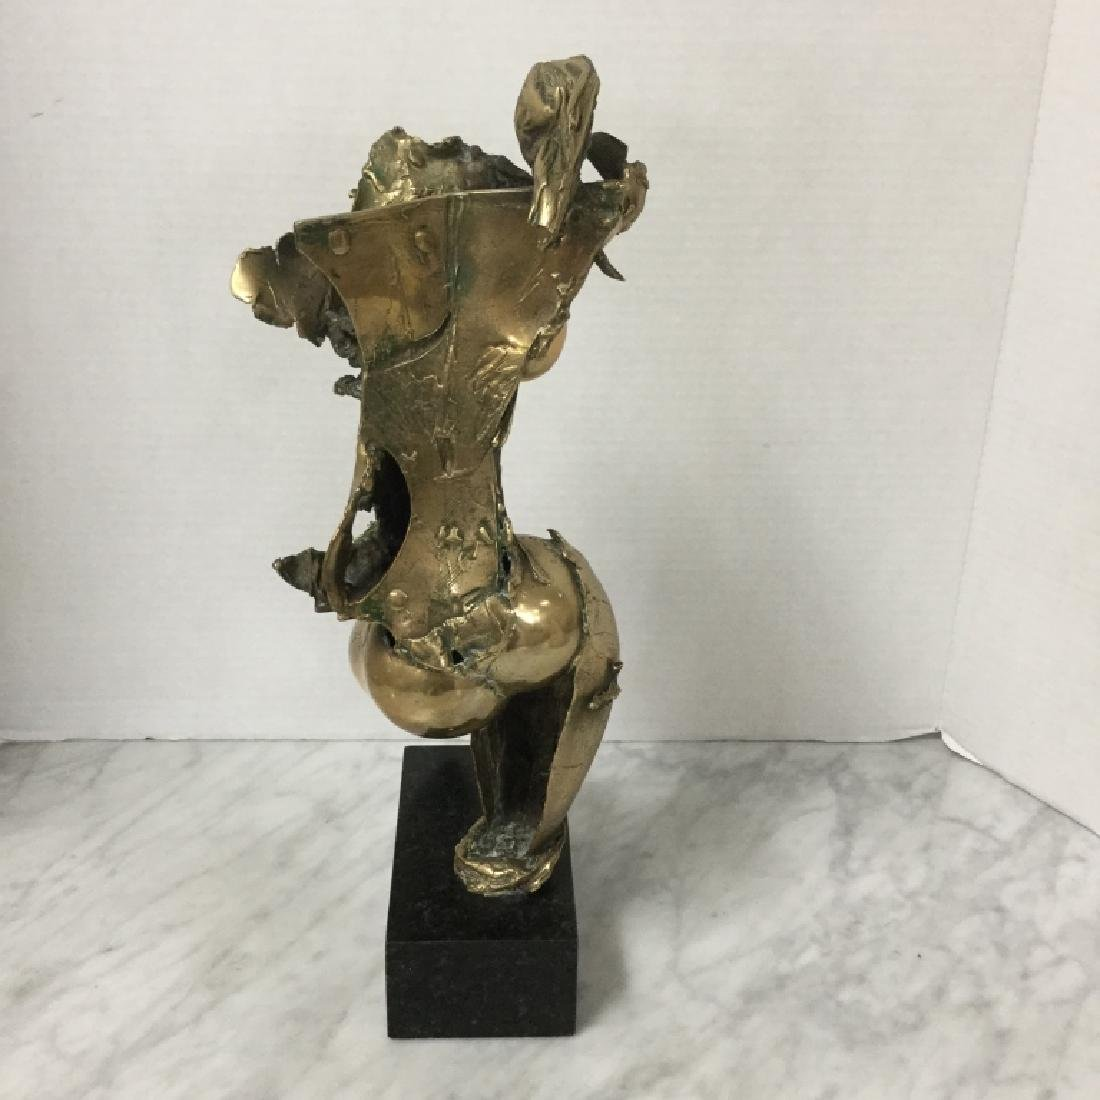 Brass Nude Sculpture, Signed PG 1980 - 4